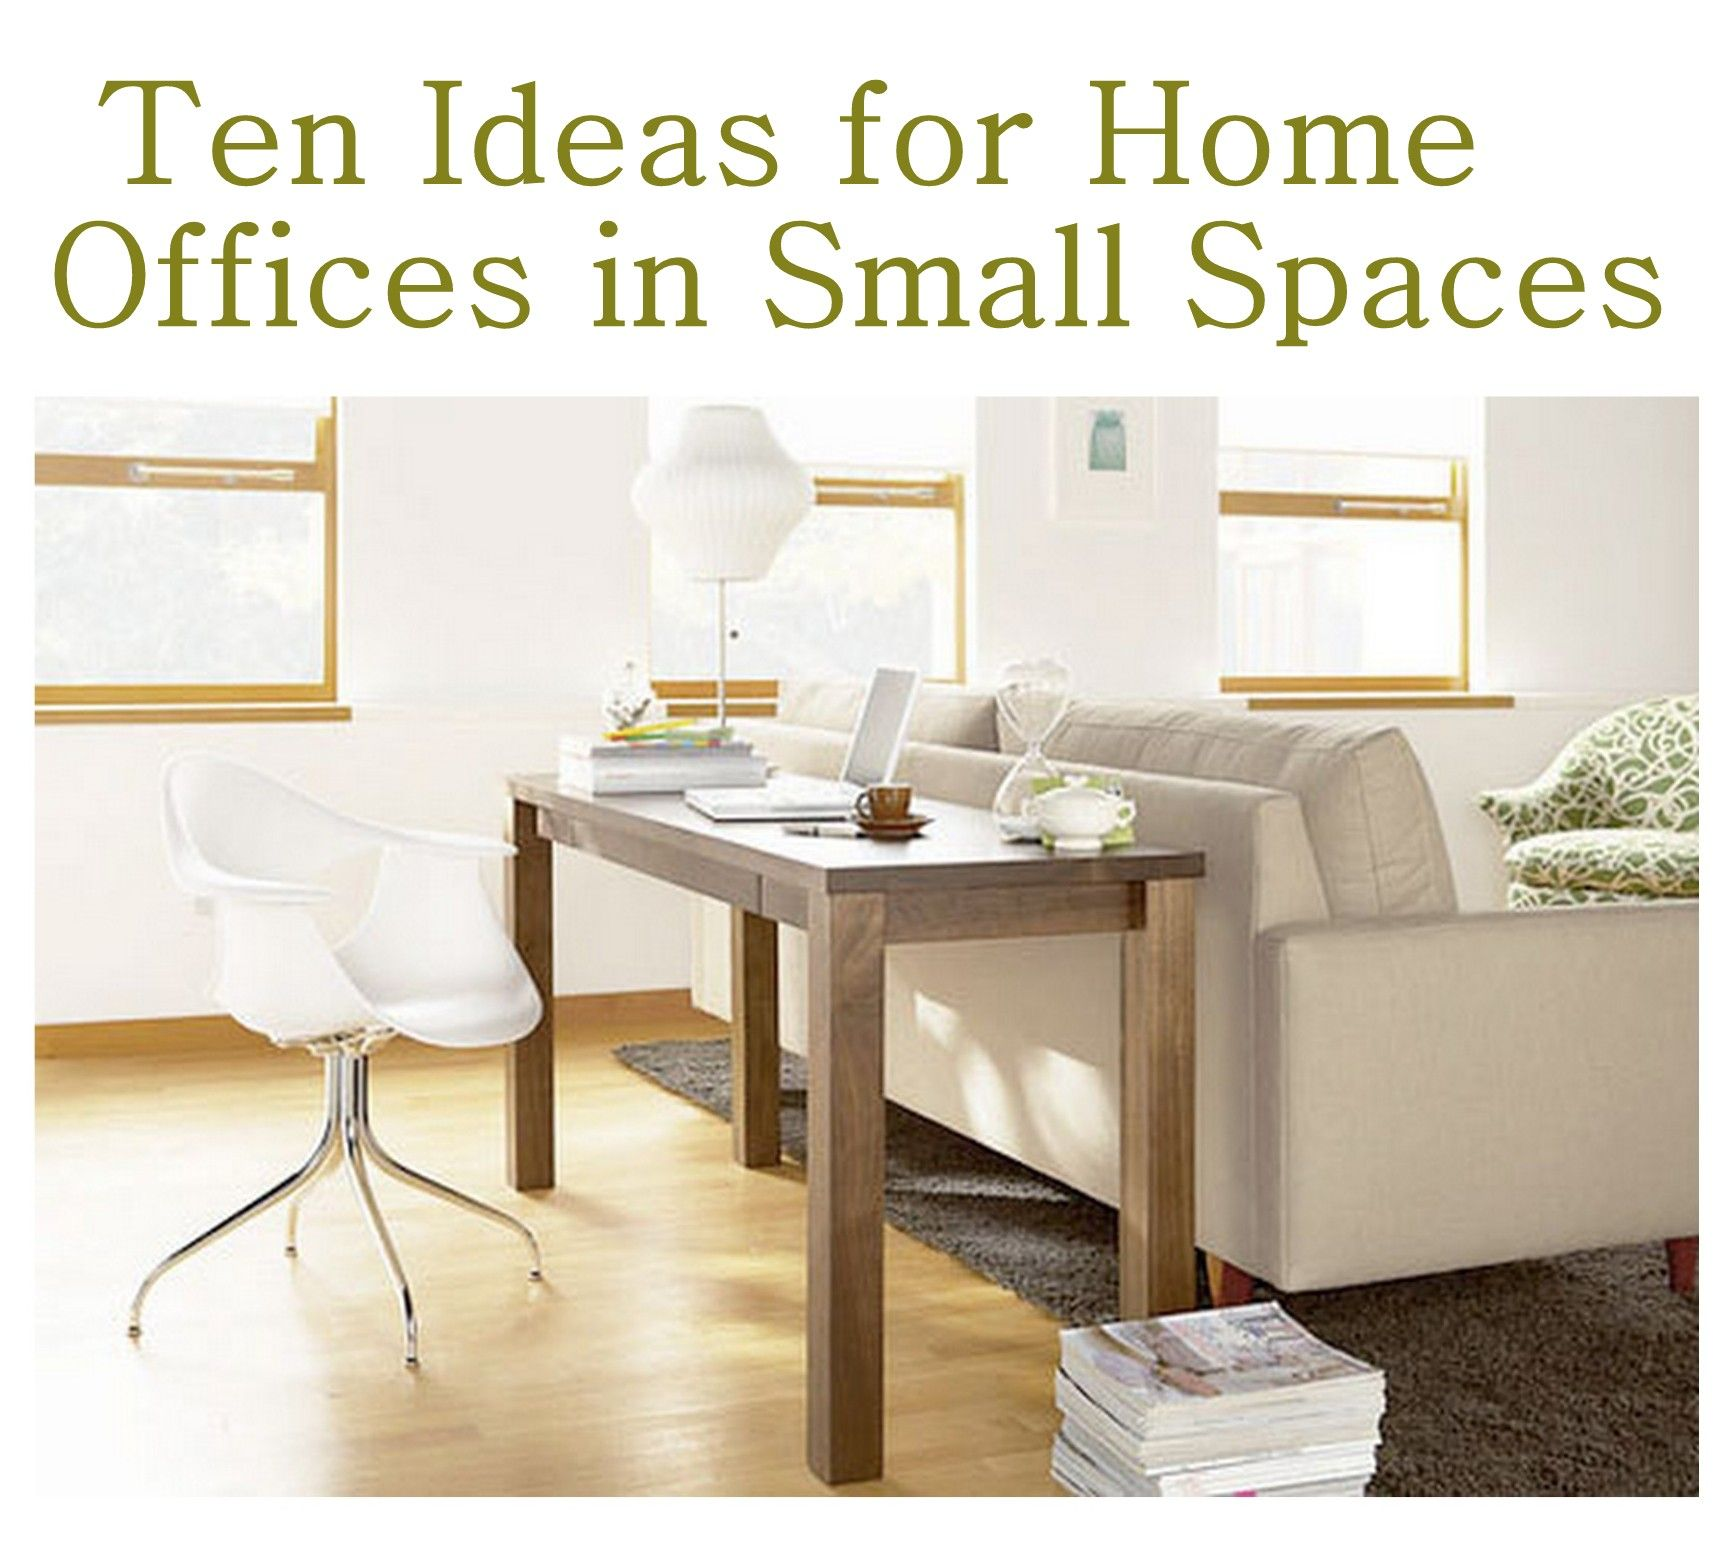 10 ideas for home offices for small spaces    centsationalgirl.com